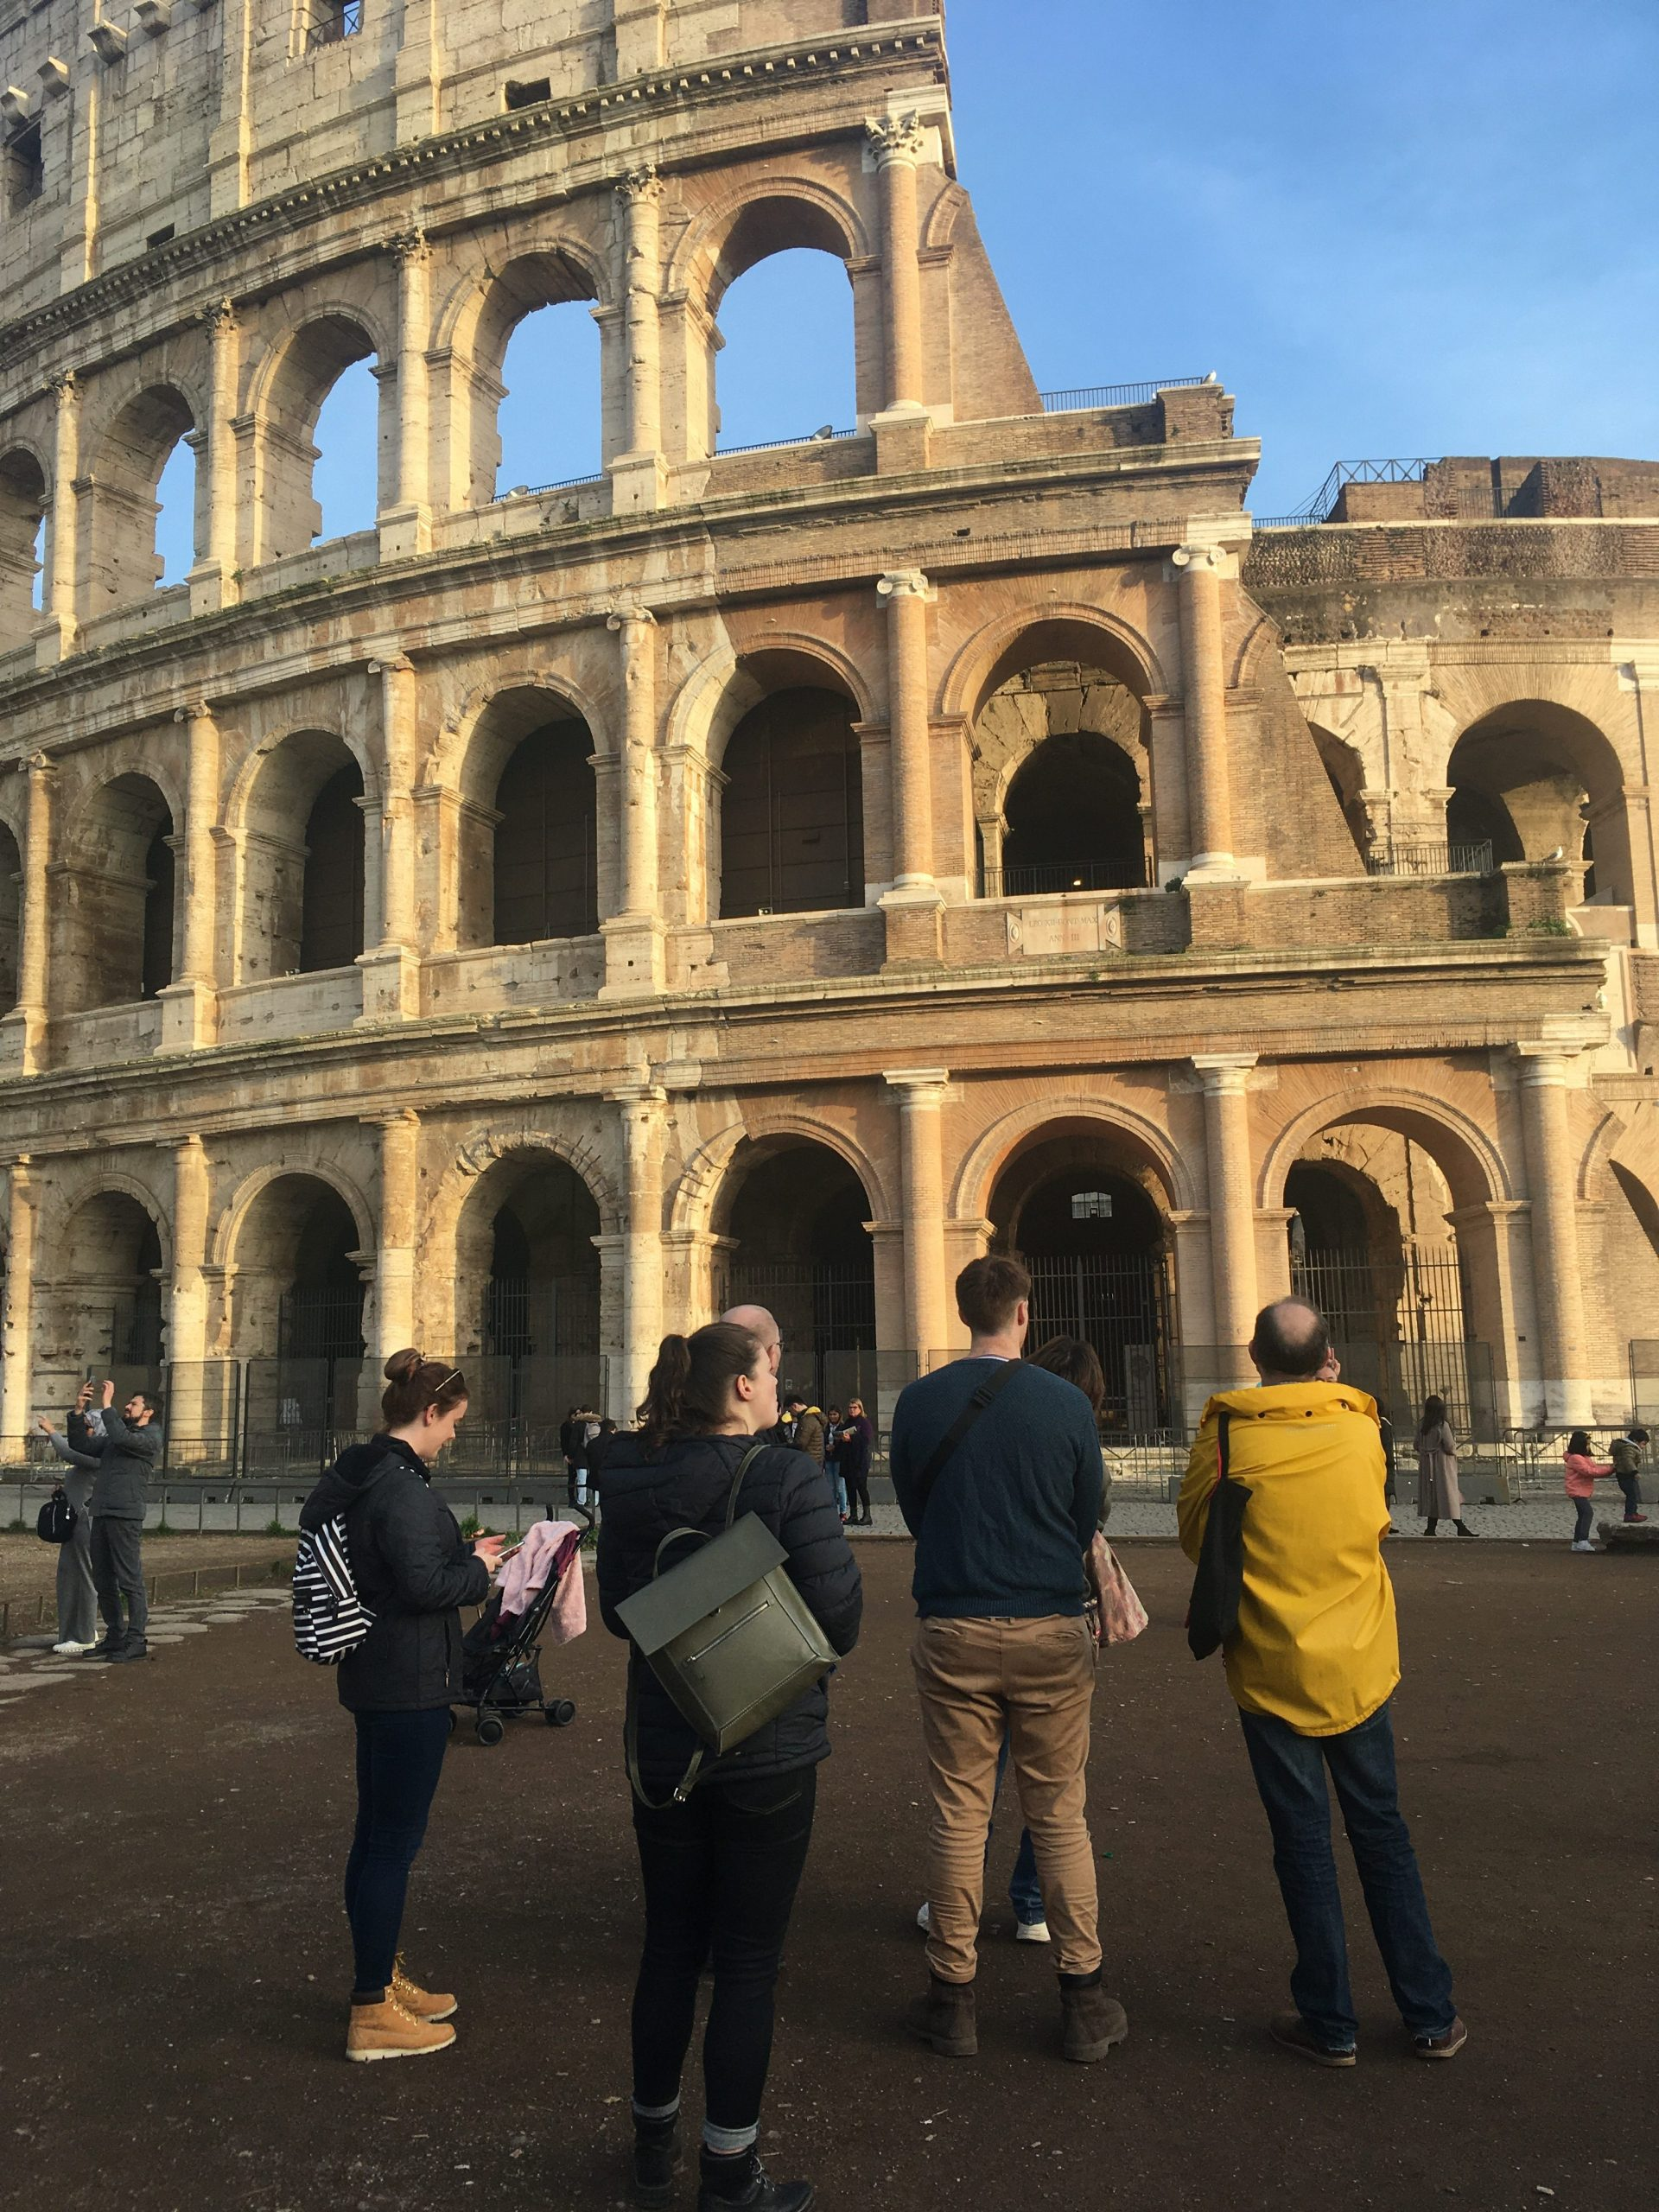 Students and staff contemplating repairs to olosseum, Rome